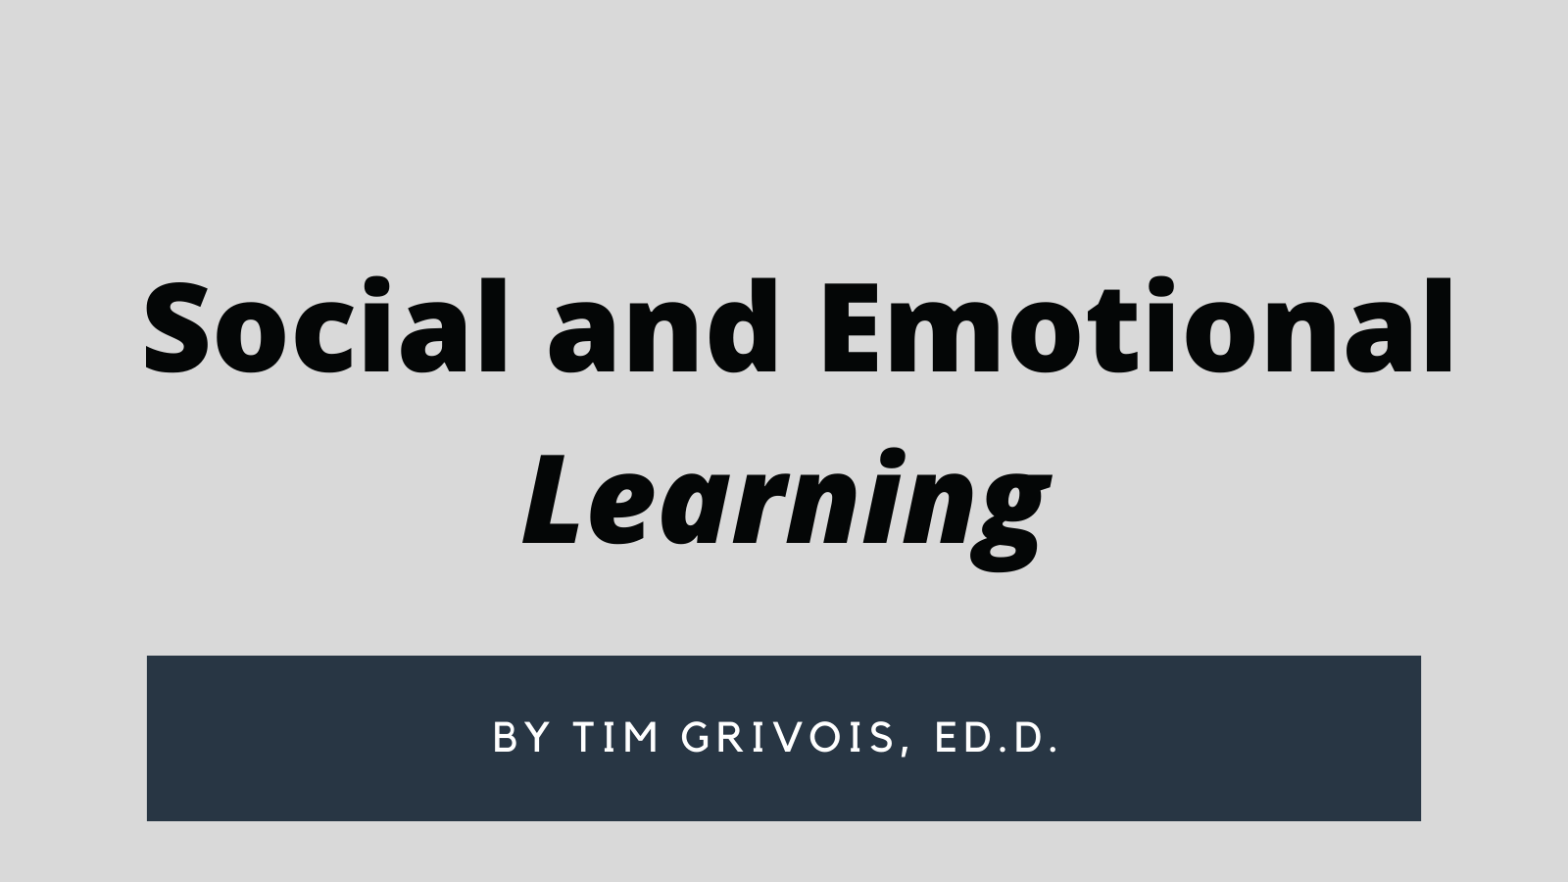 Title: Social and emotional learning in black letters. Below is the author: Tim Grivois, Ed.D.